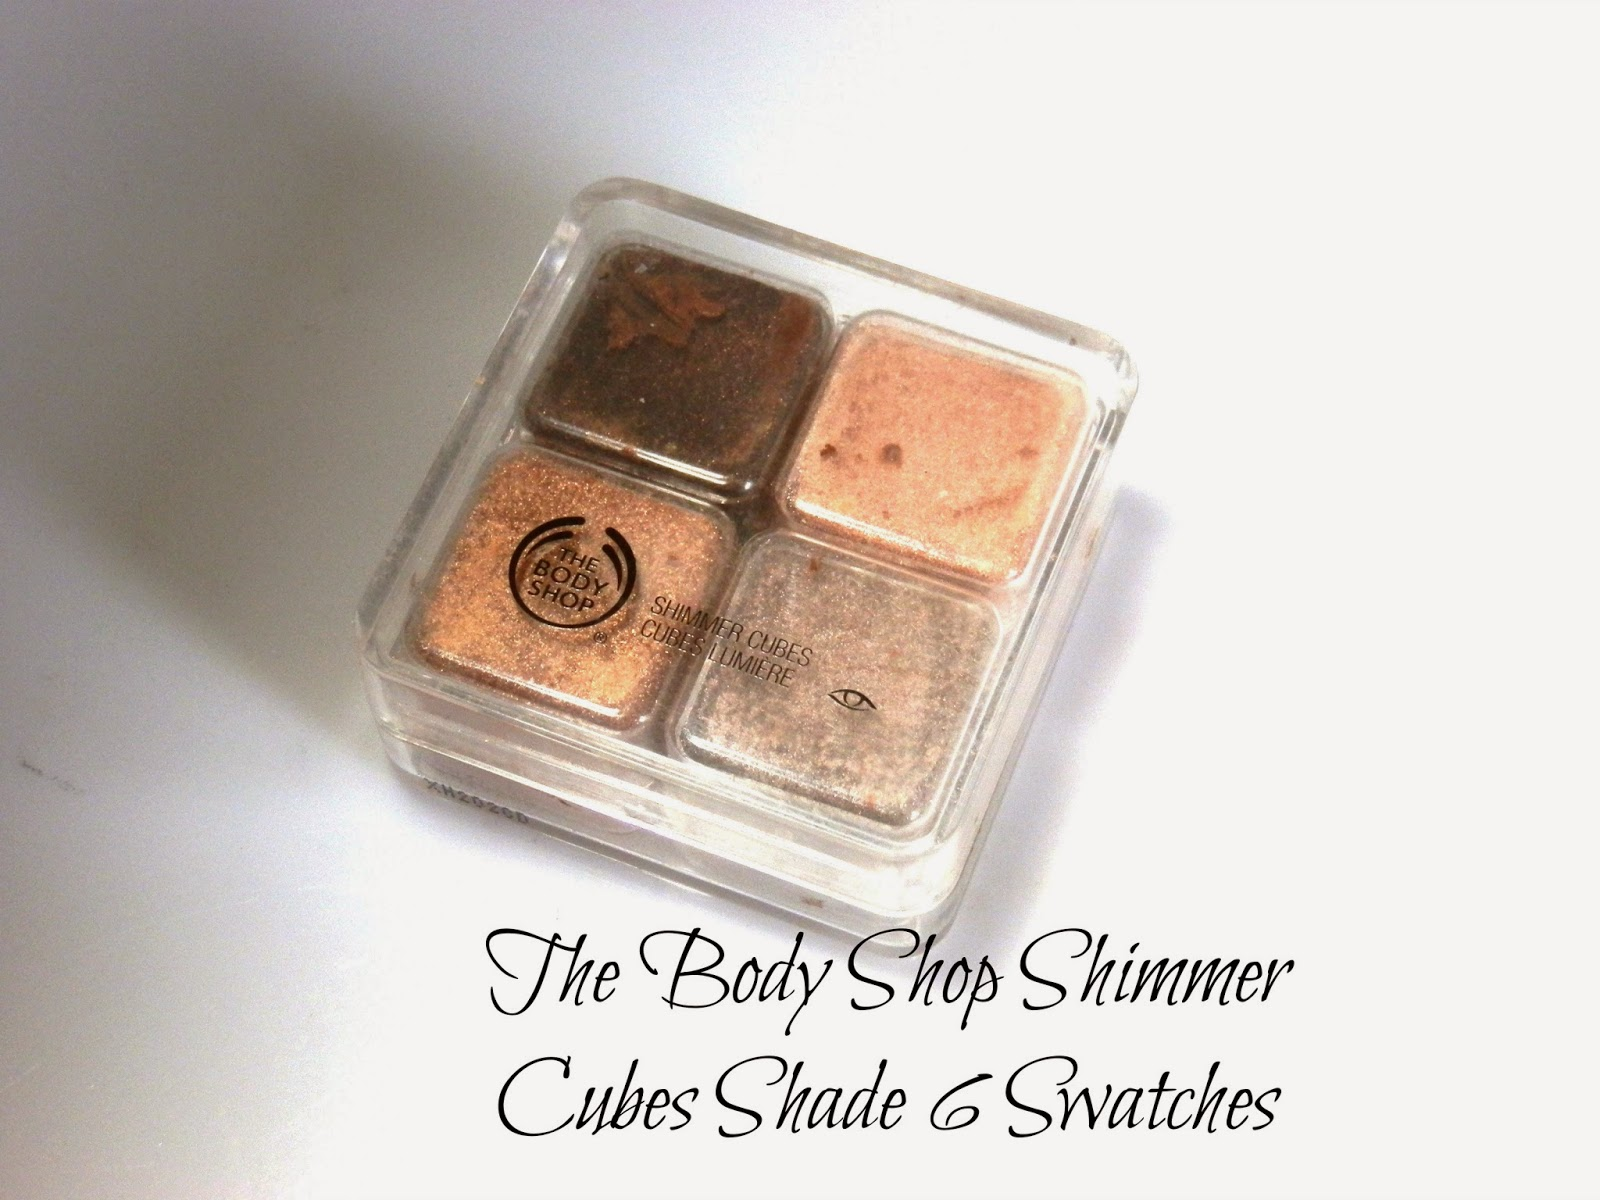 The Body Shop Shimmer Cubes Shade 6 Swatches